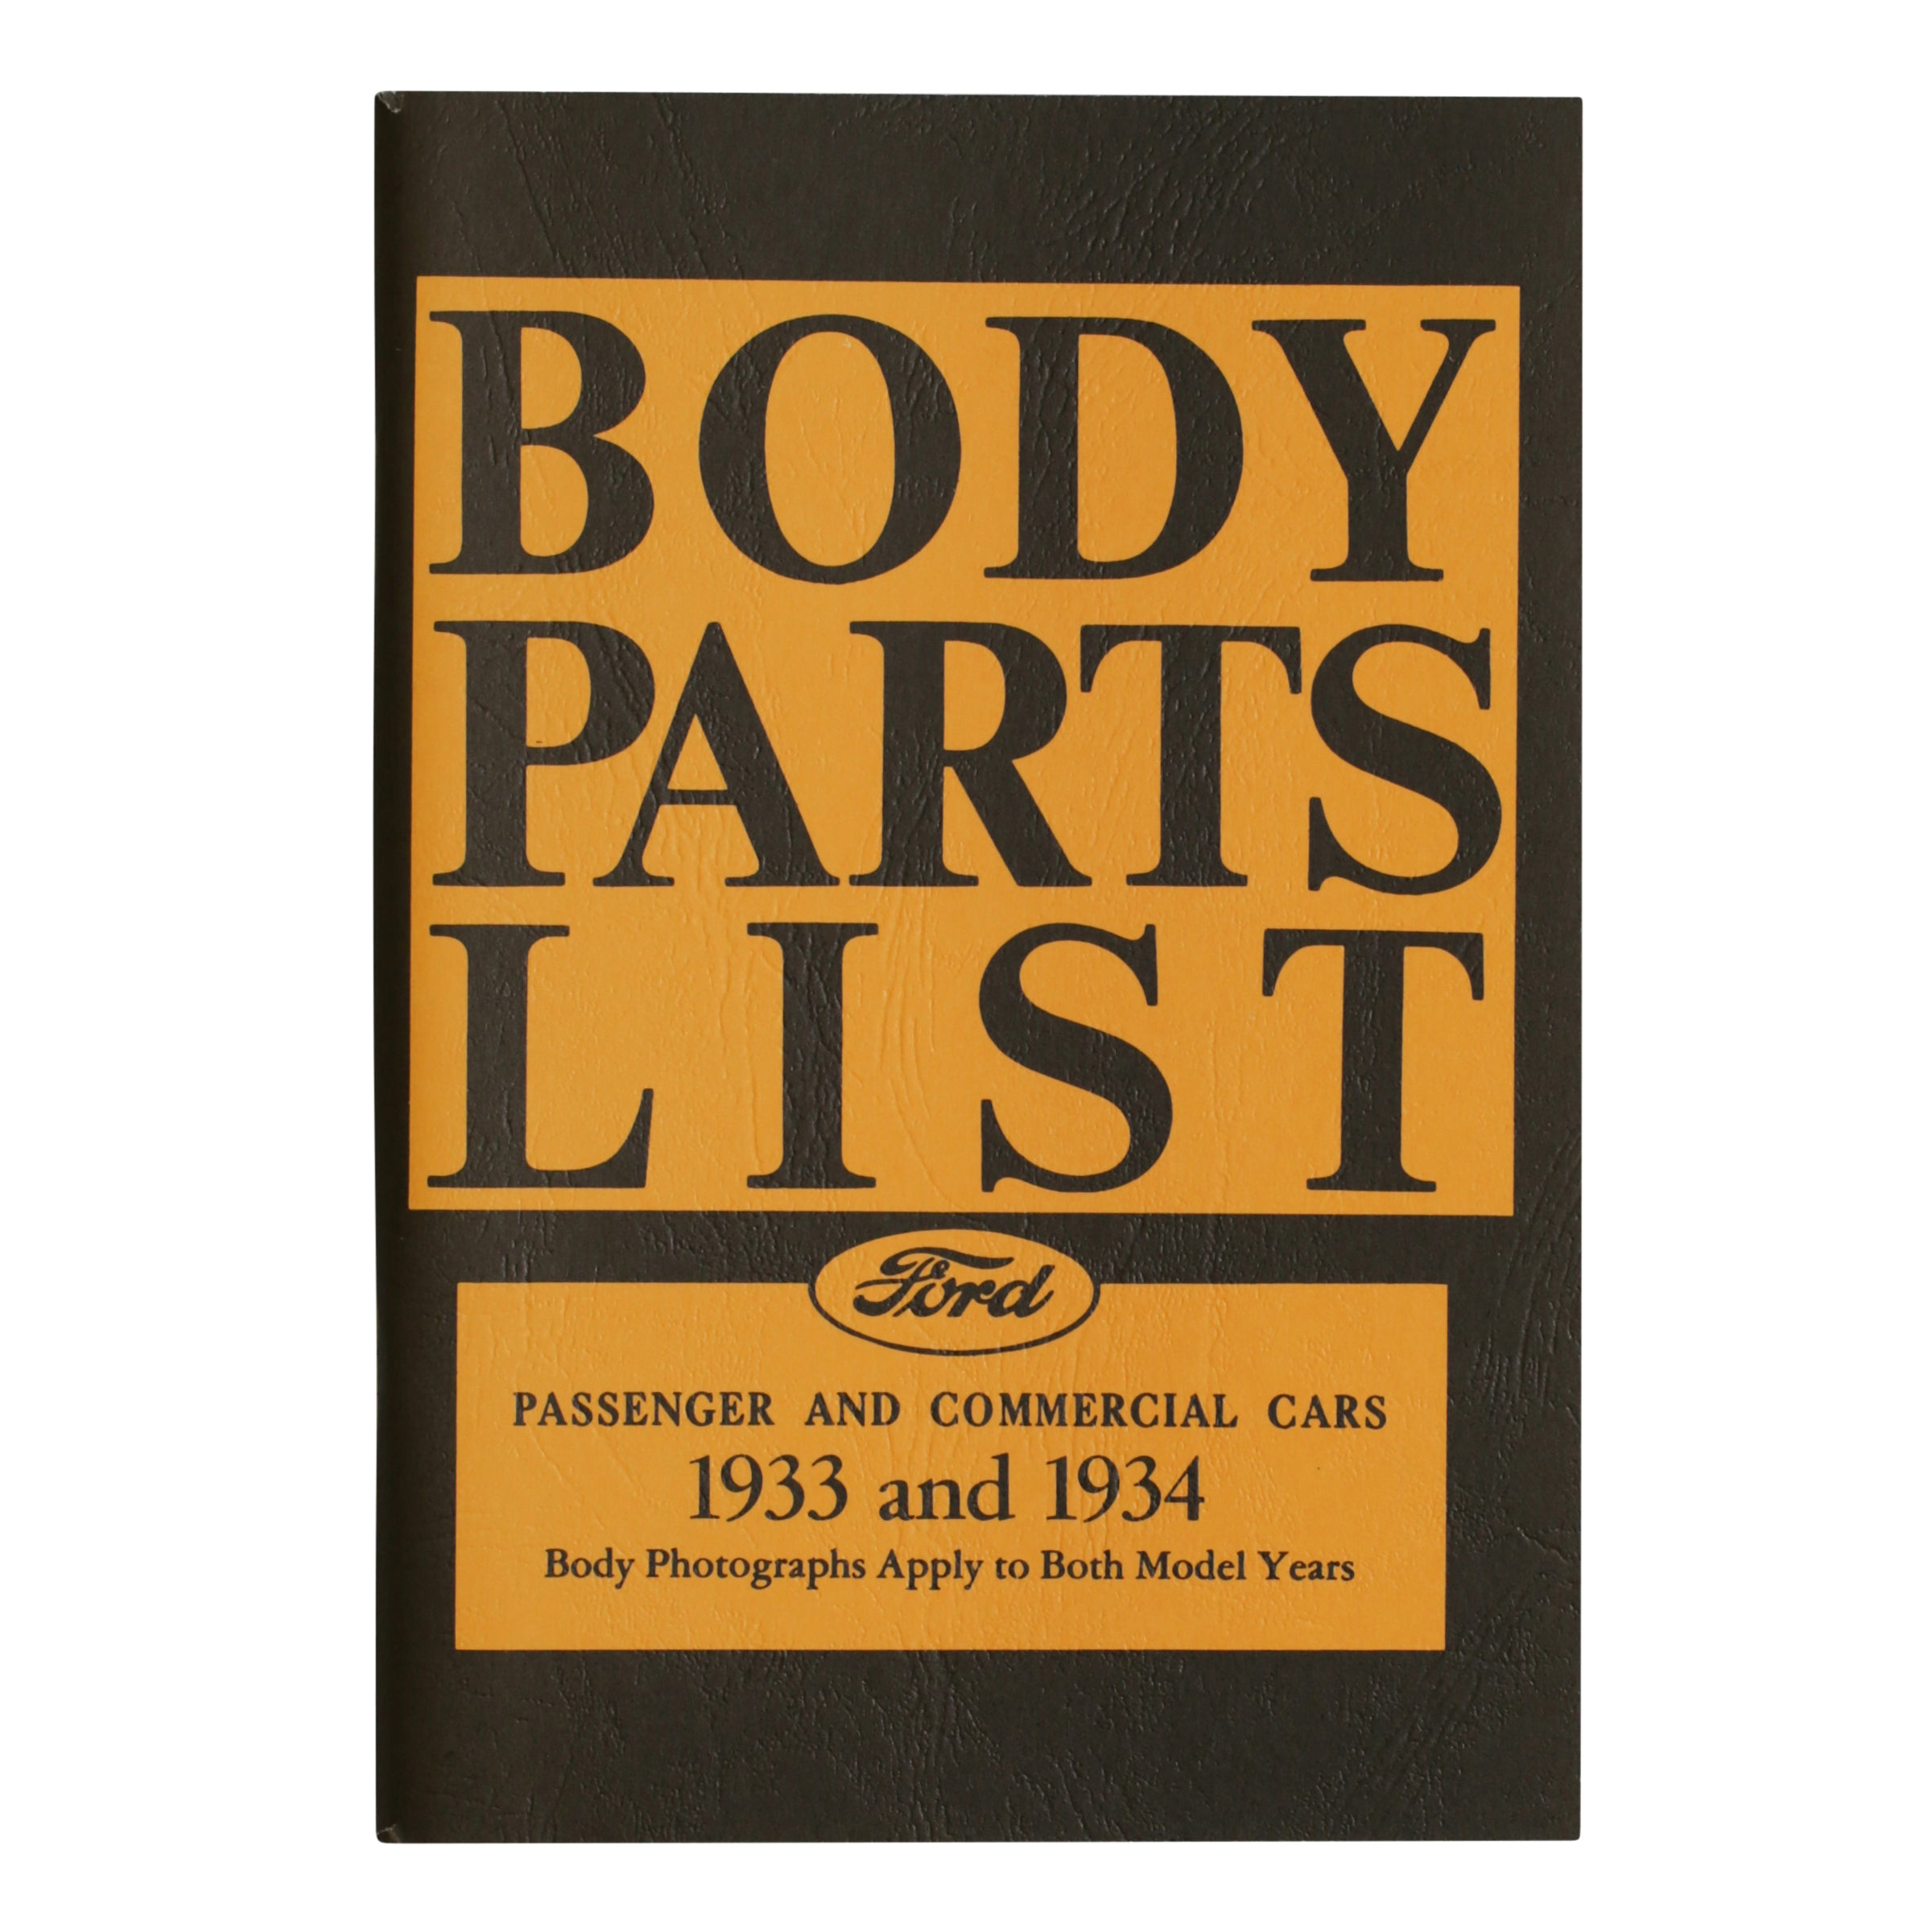 Ford Body Parts List • 1933-34 Ford